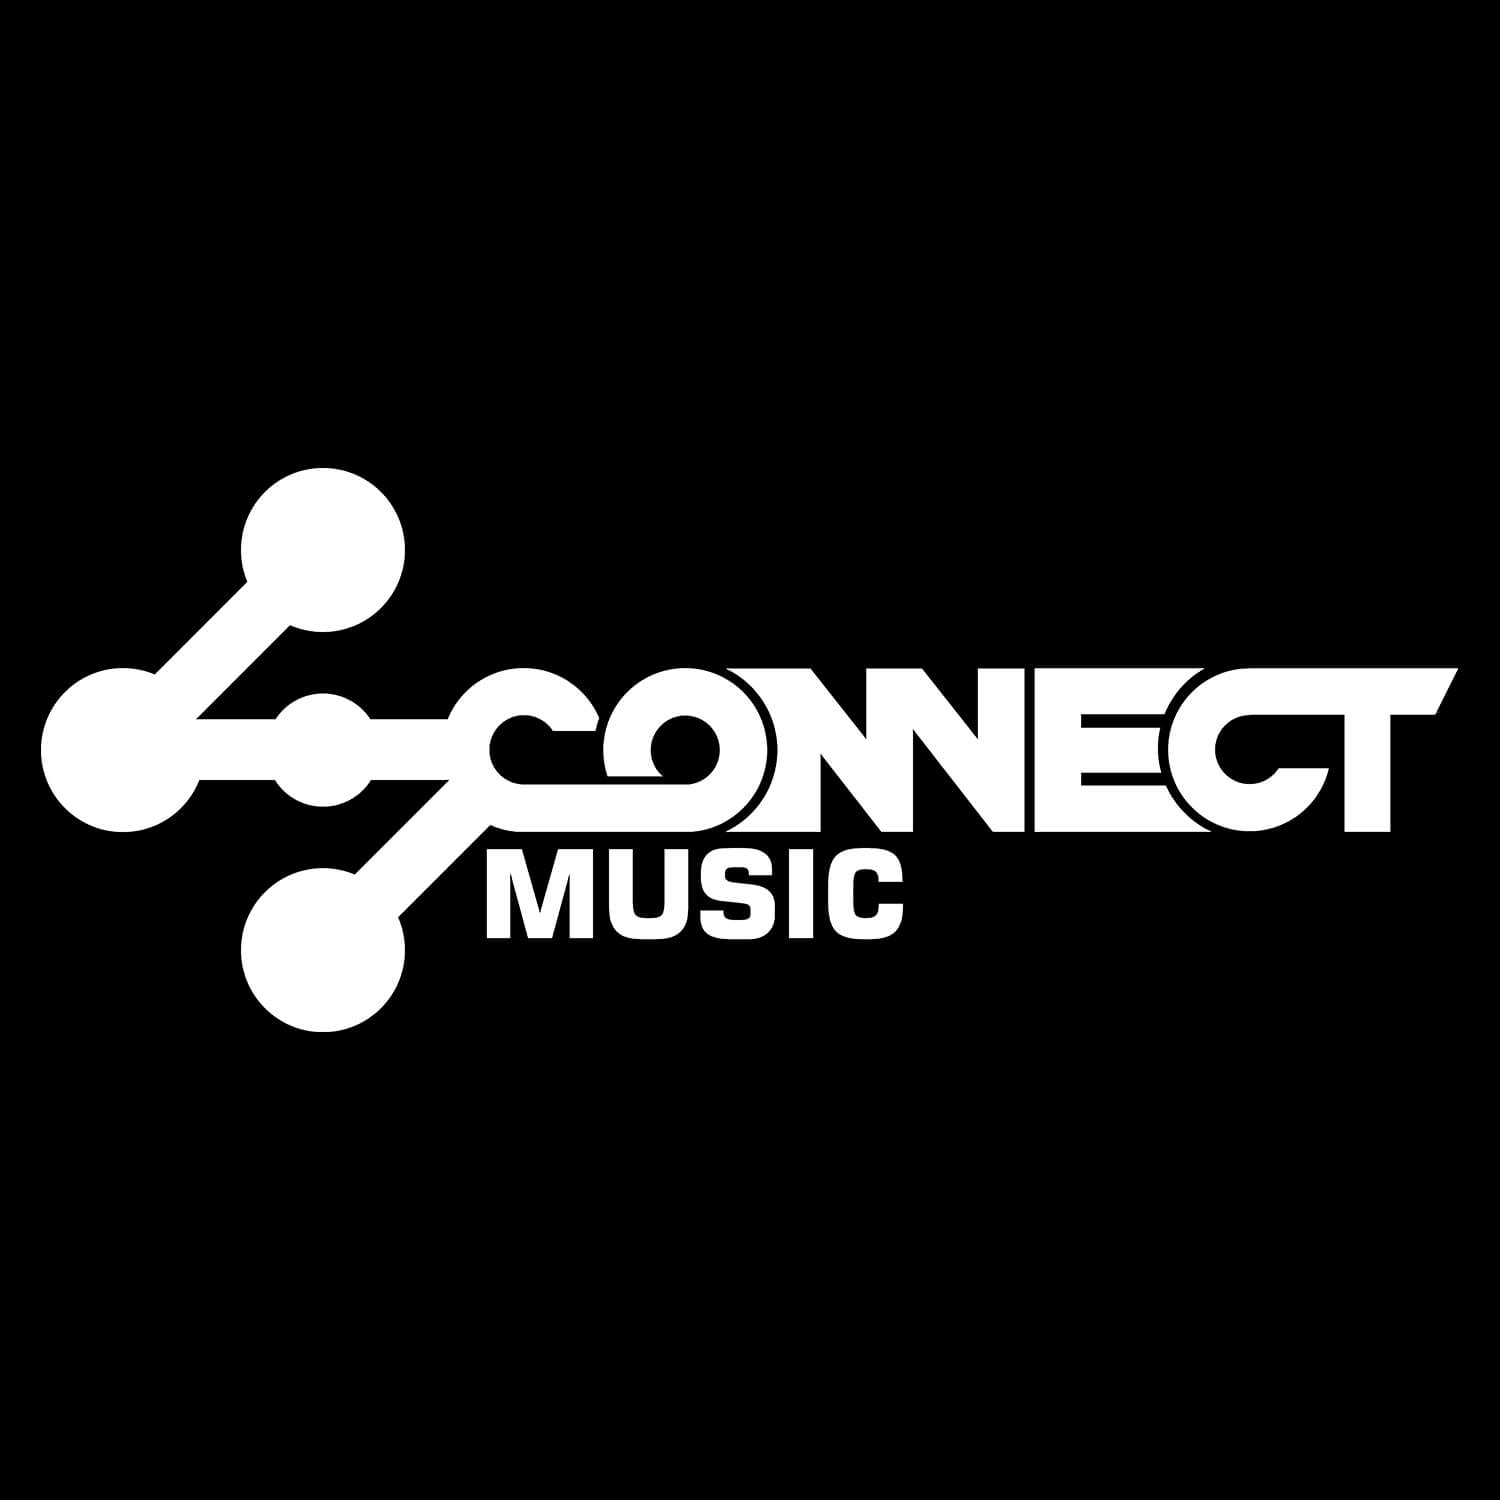 connect-music-logo-square-black-background